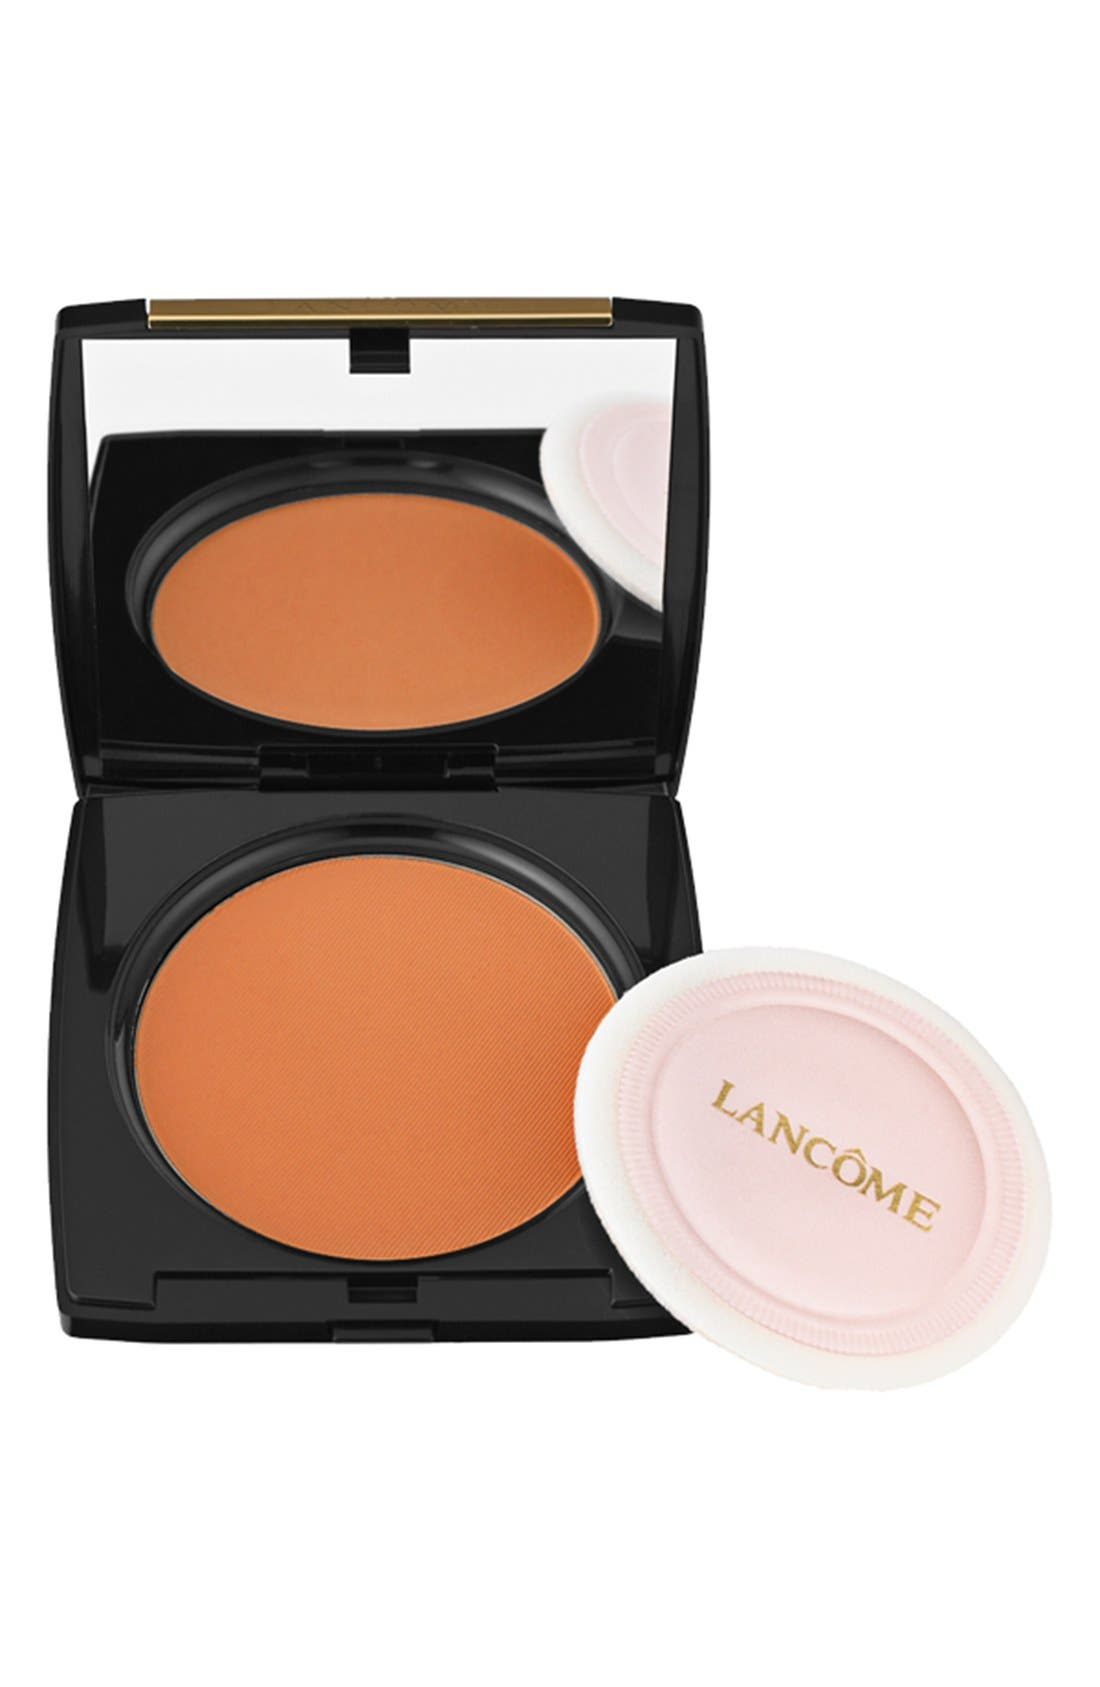 LANCÔME, Dual Finish Multi-Tasking Powder Foundation, Main thumbnail 1, color, 510 SUEDE (C)